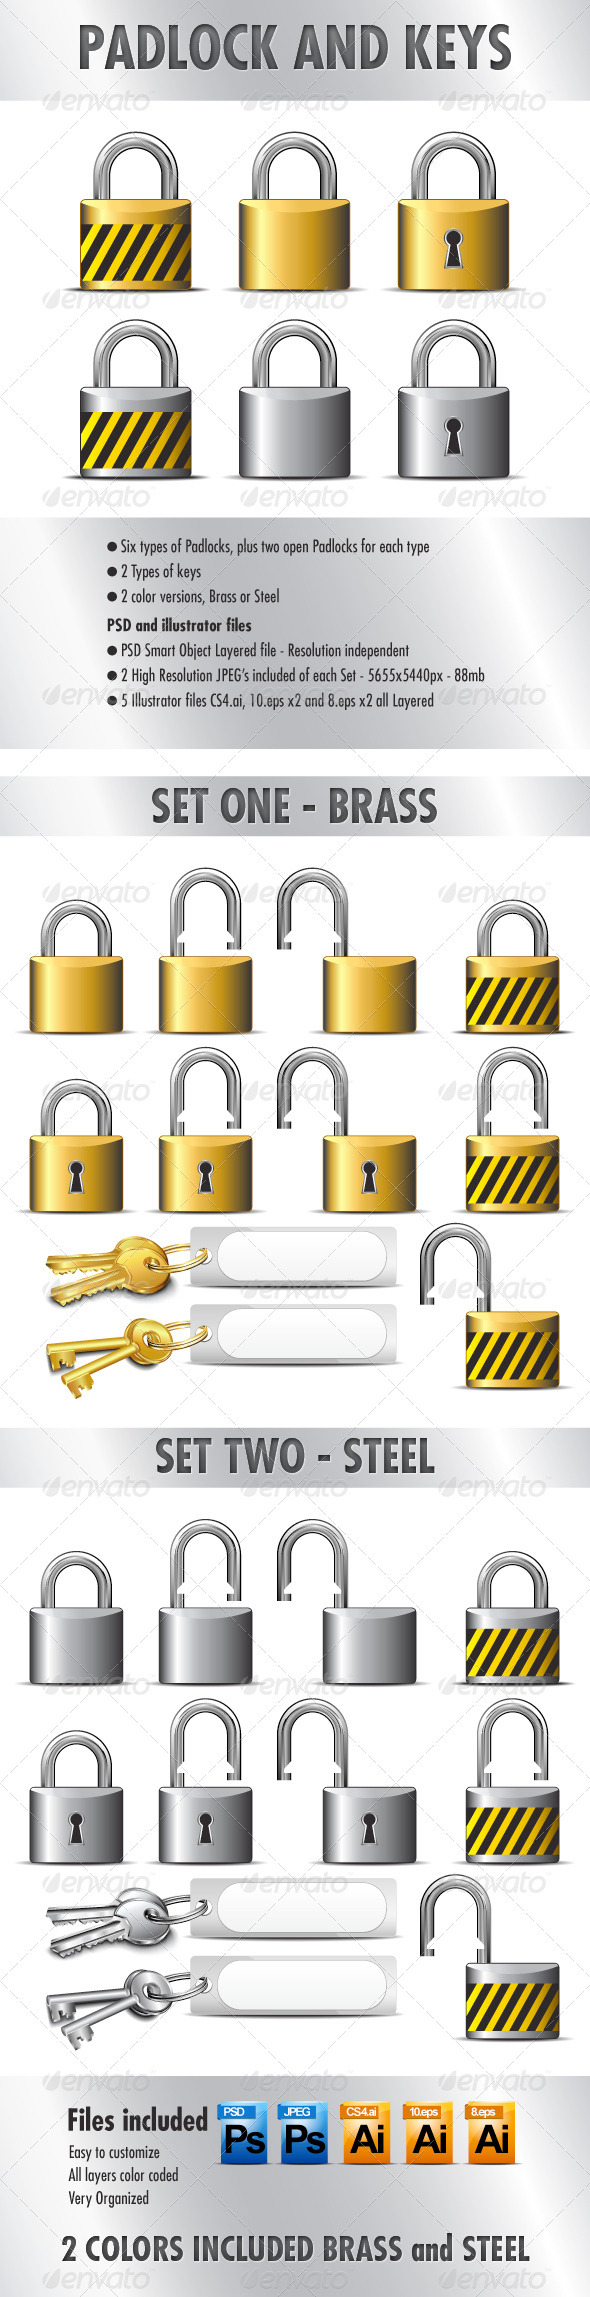 Padlocks and Keys - in Brass and Steel - Web Elements Vectors